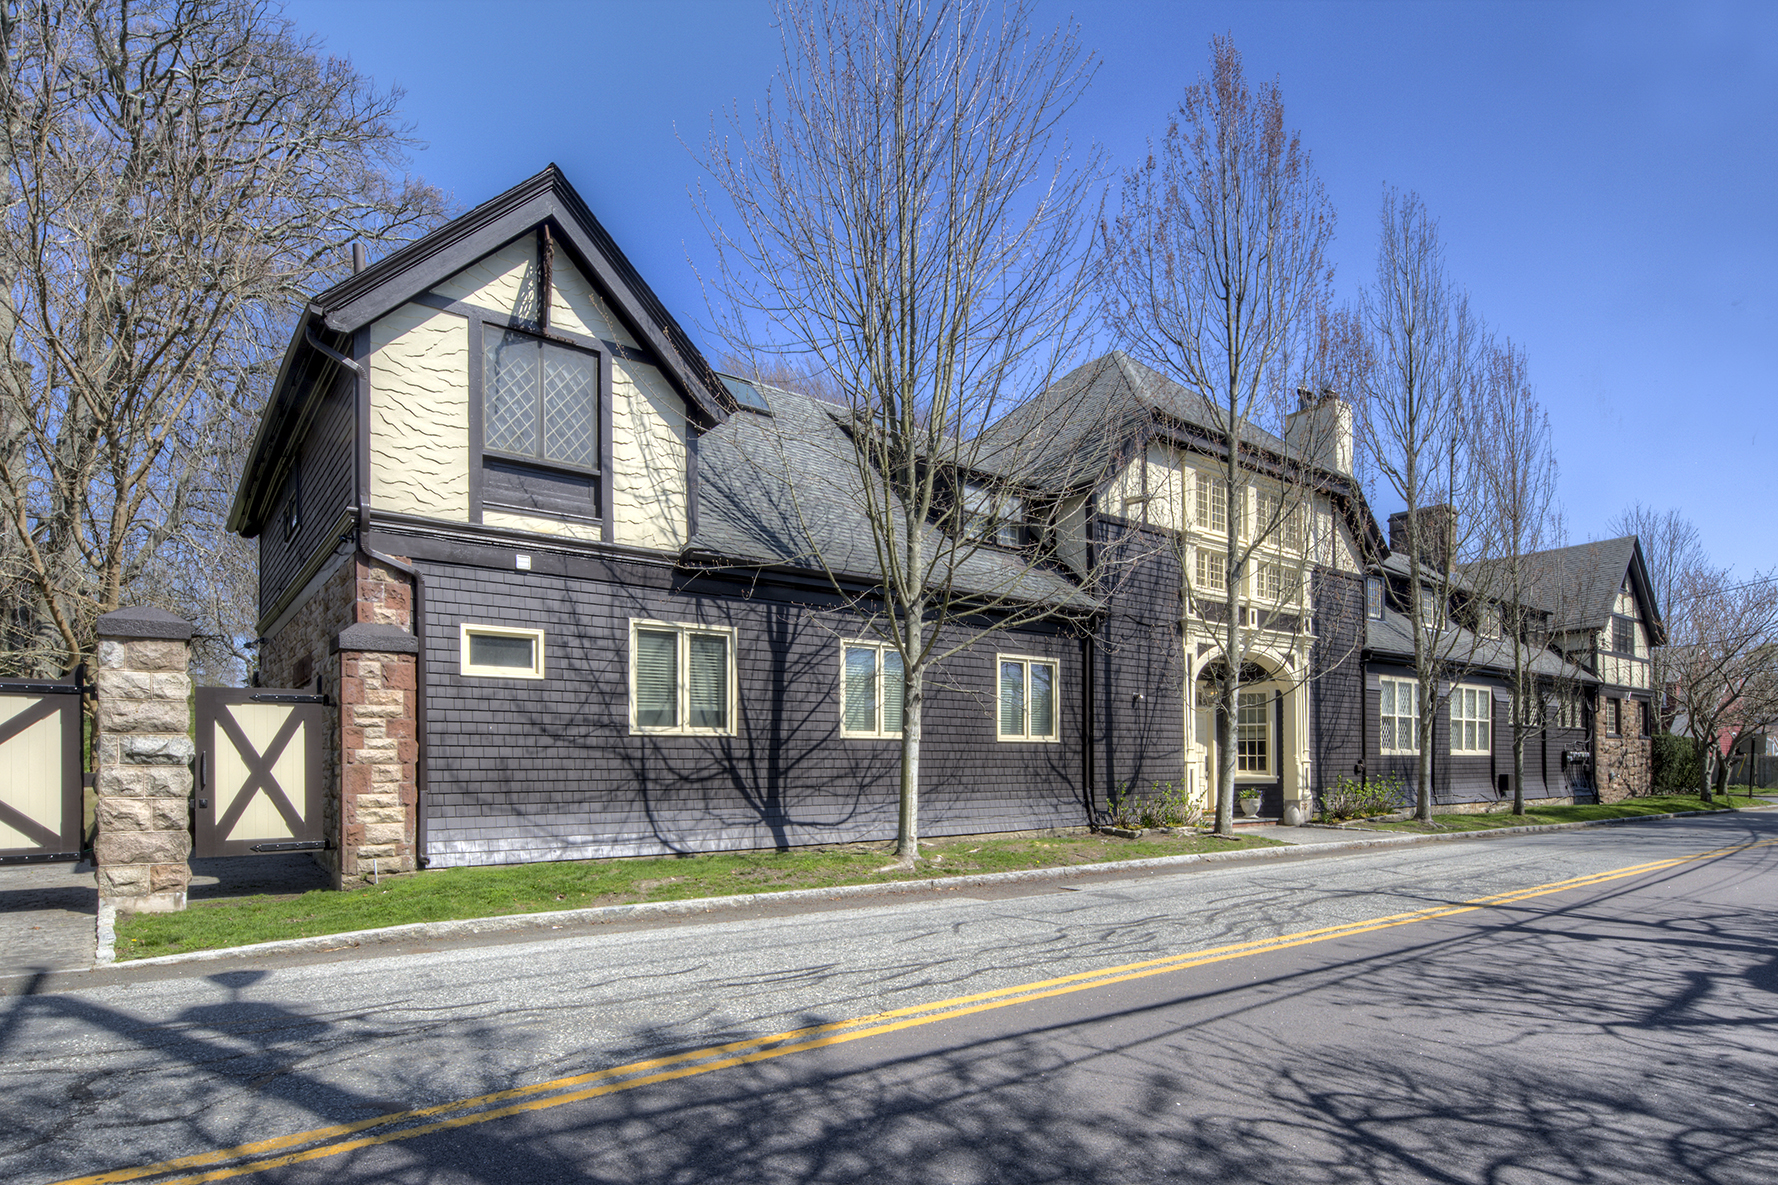 Condominium for Sale at Chetwode Carriage House 78 Coggeshall Avenue Units 2 & 4 Newport, Rhode Island, 02840 United States